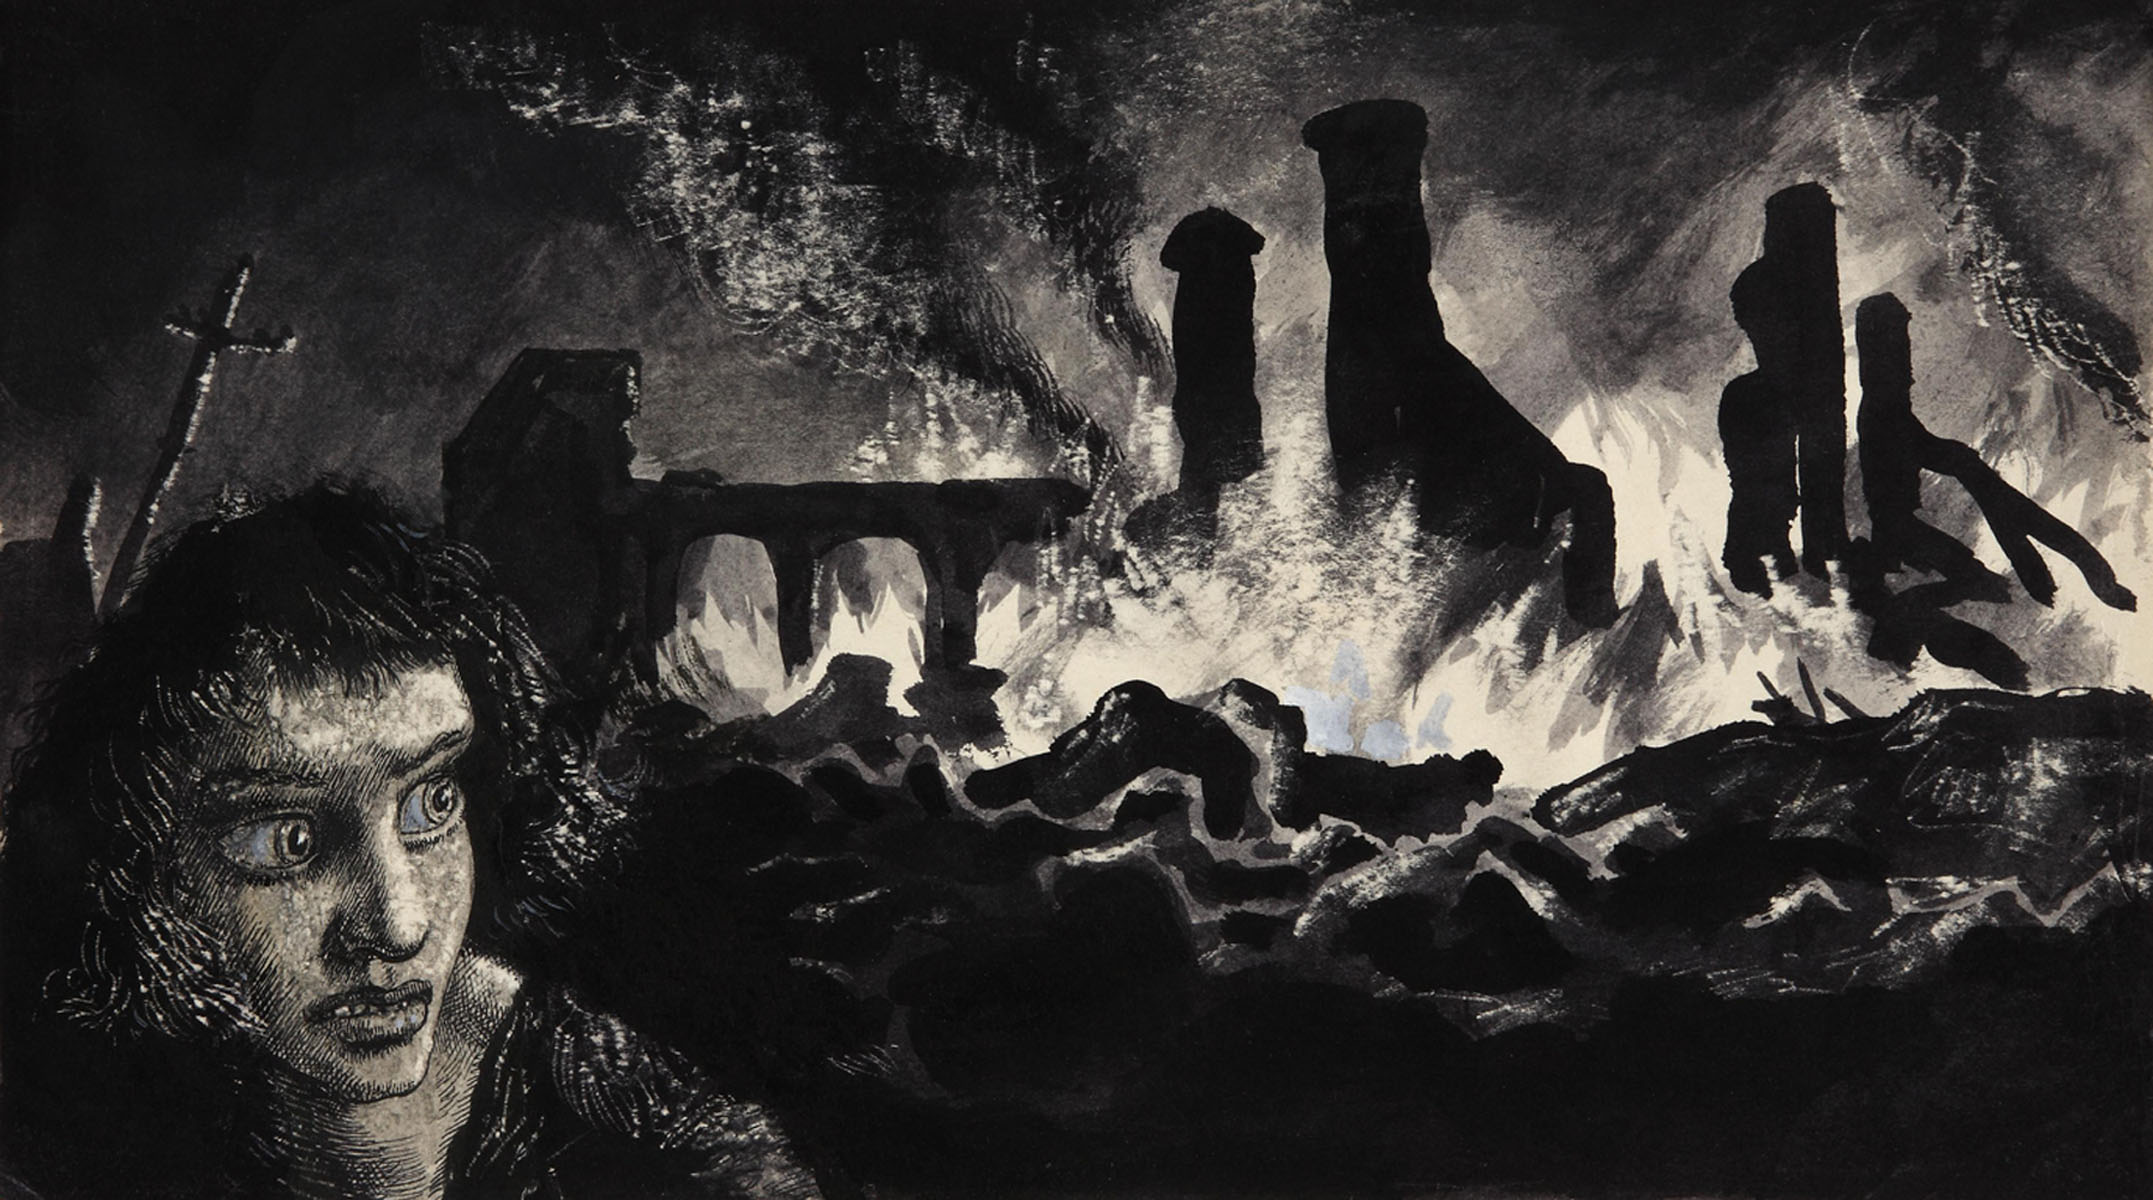 Image of 'Head by Firelight', a drawing by artist Mervyn Peake for a 'Horrors of War' booklet (catalogue reference: INF 3/658)